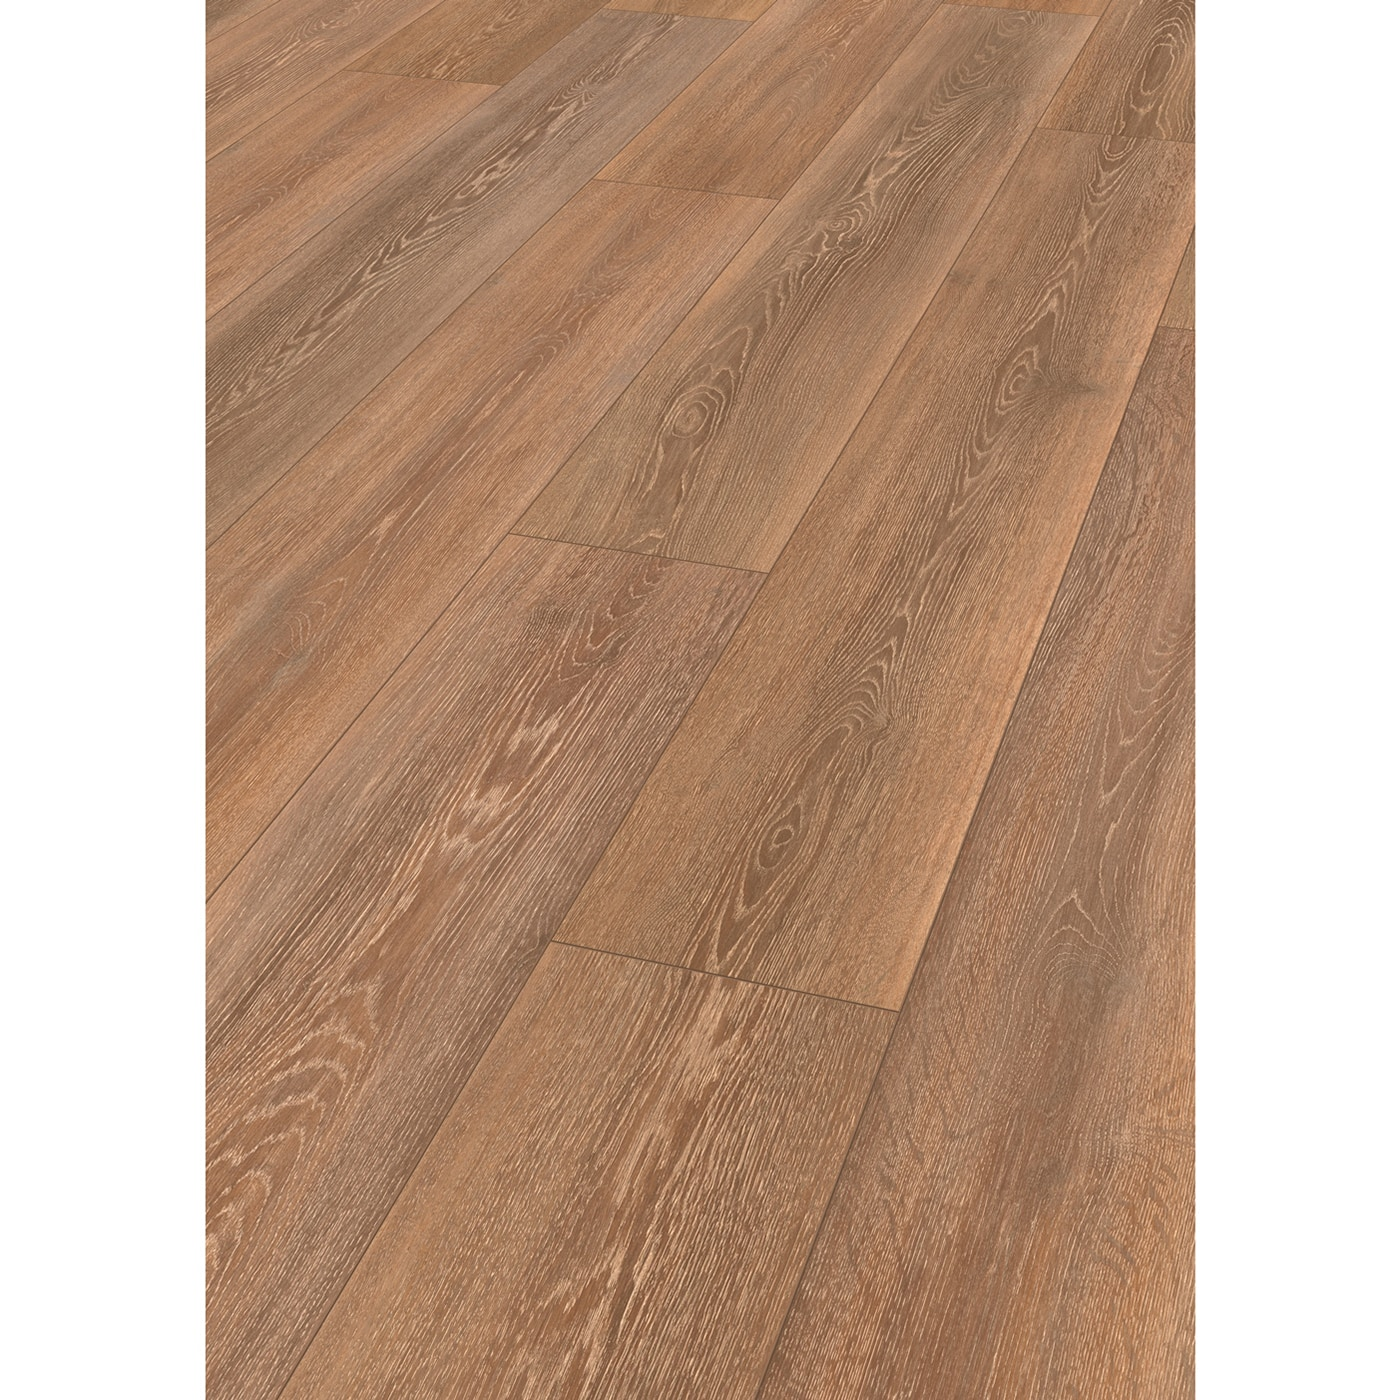 Kronotex laminate exquisit 8mm collection stirling oak for Kronotex laminate flooring reviews